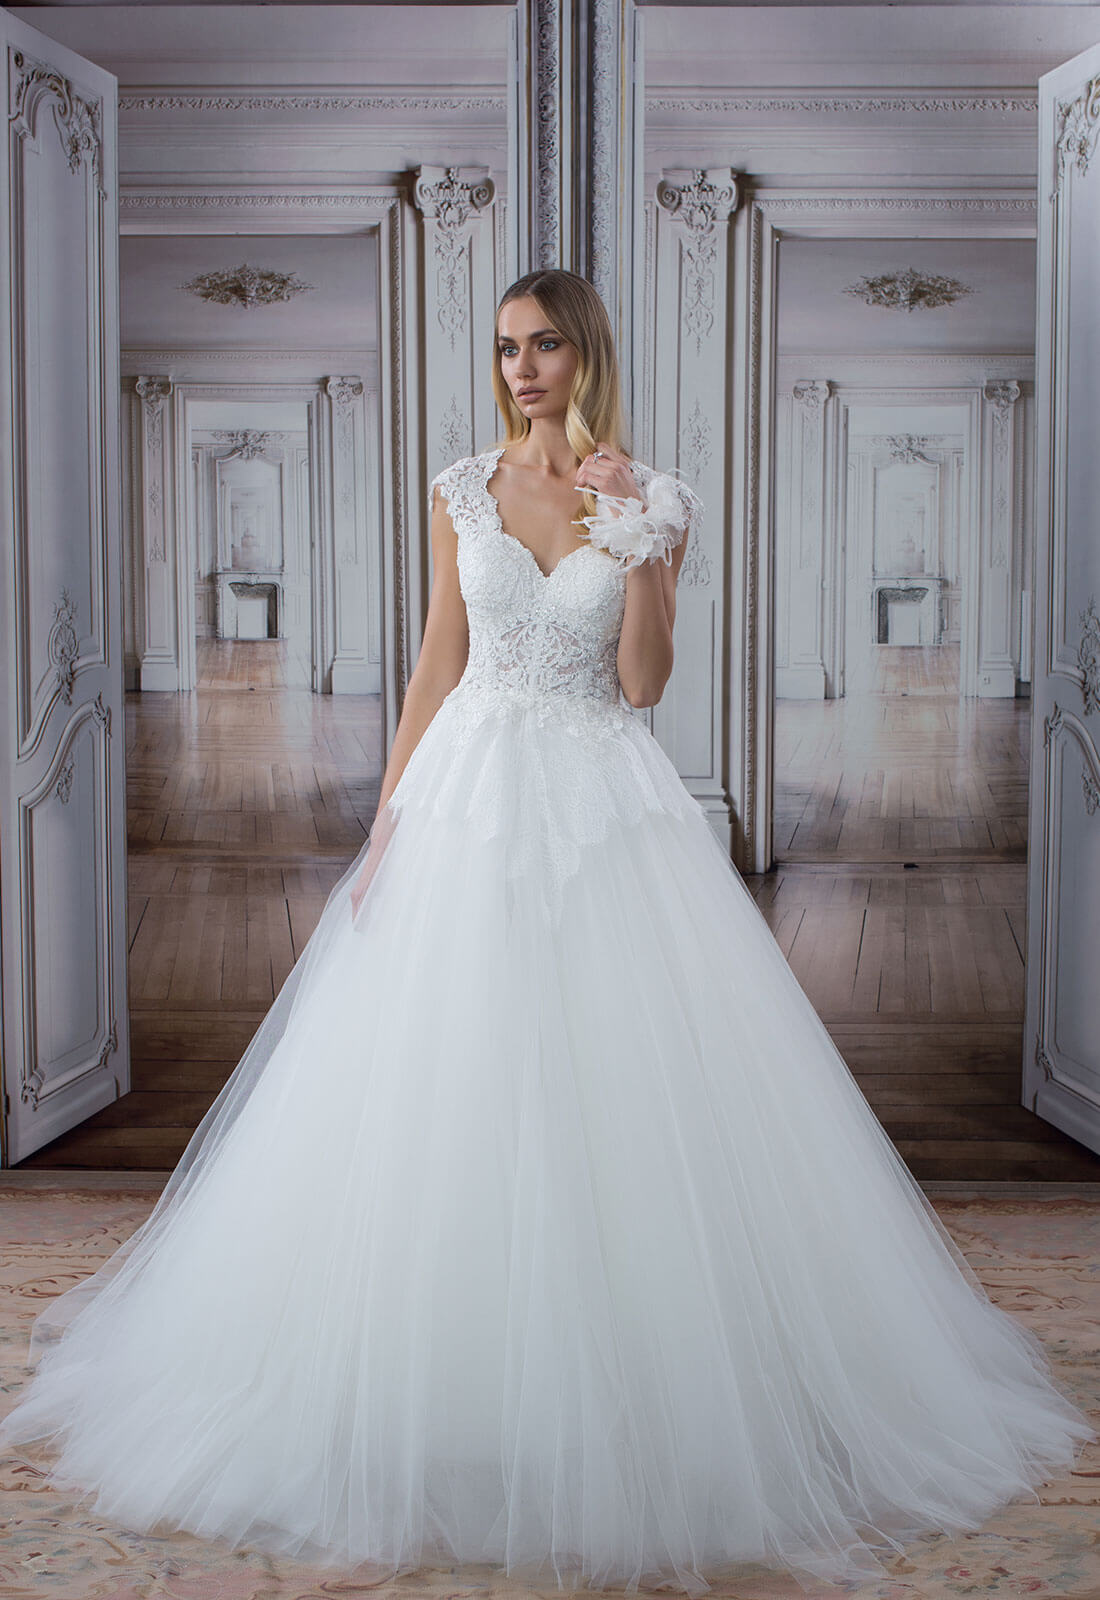 Pnina Tornai Ball Gown Wedding Dresses: Serenity Brides